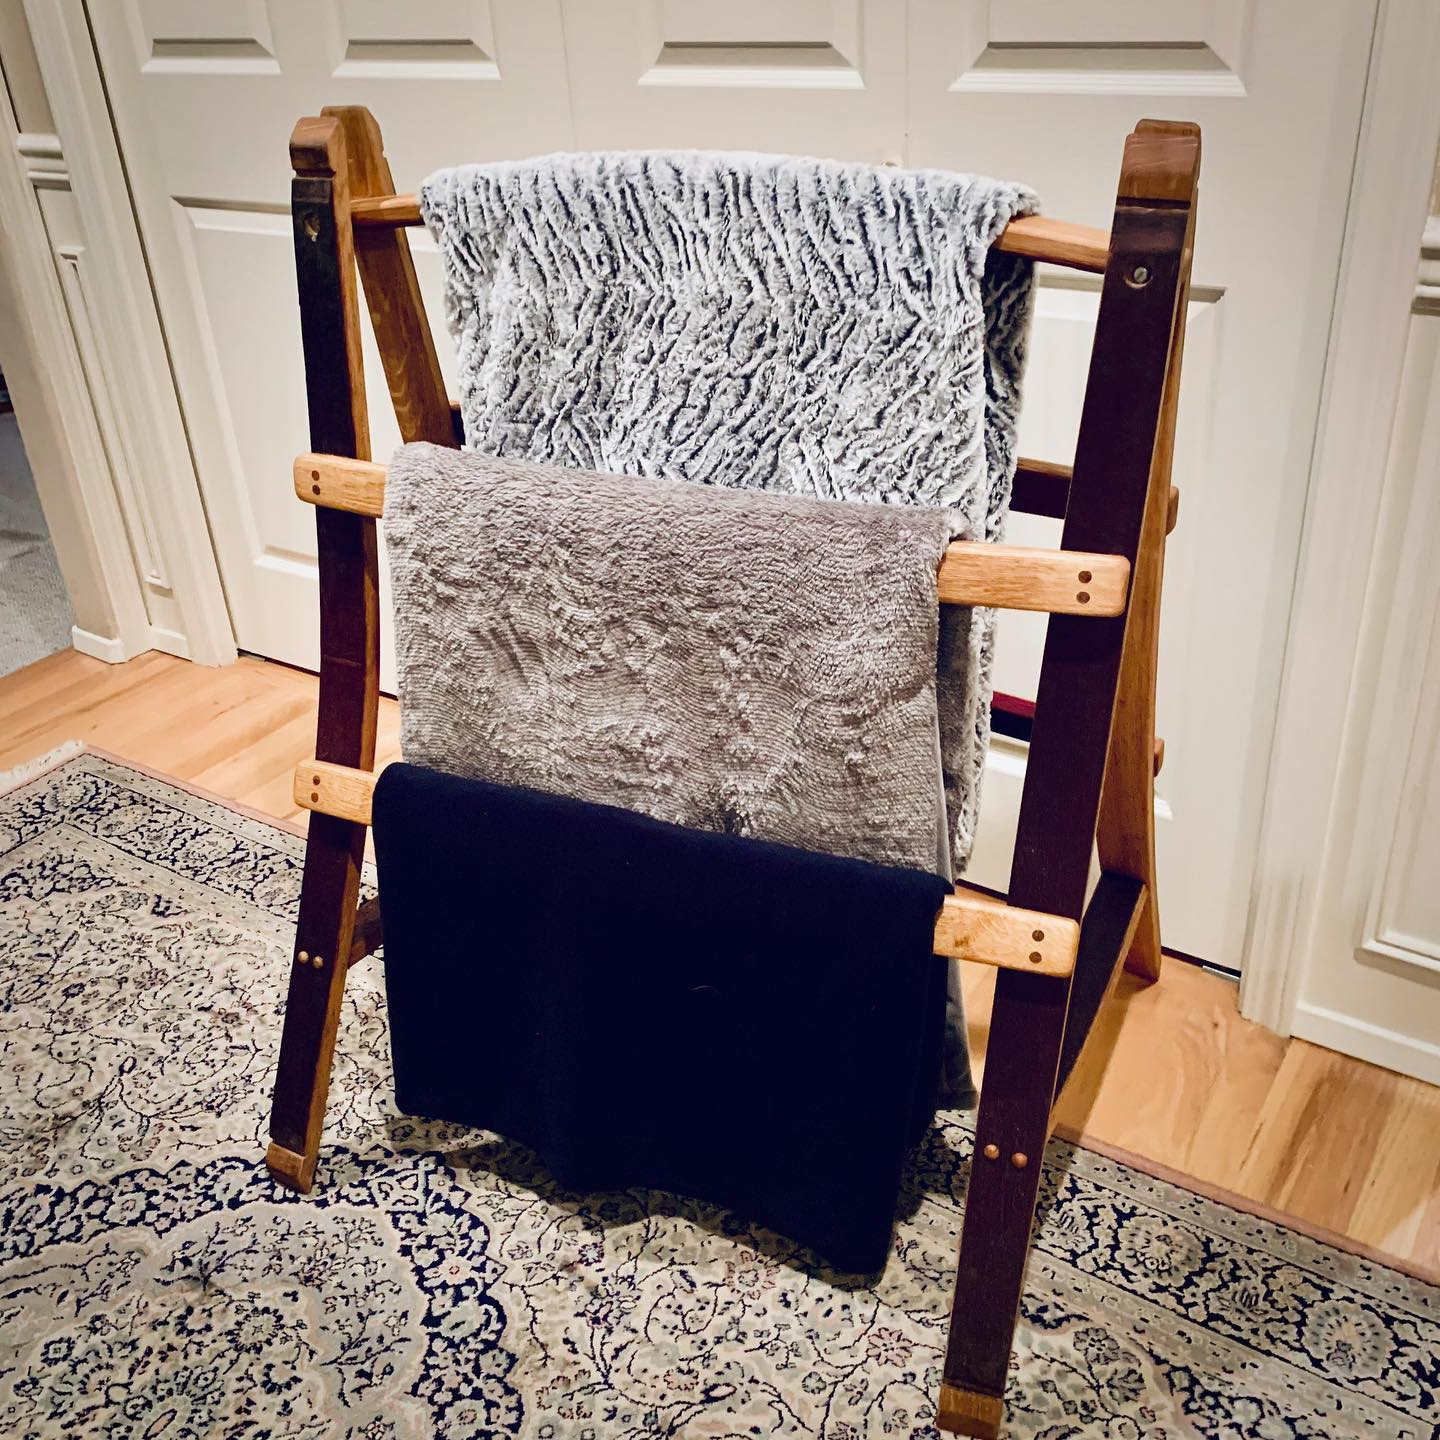 Woodinville Barrel Works - wine barrel furniture - blanket ladder